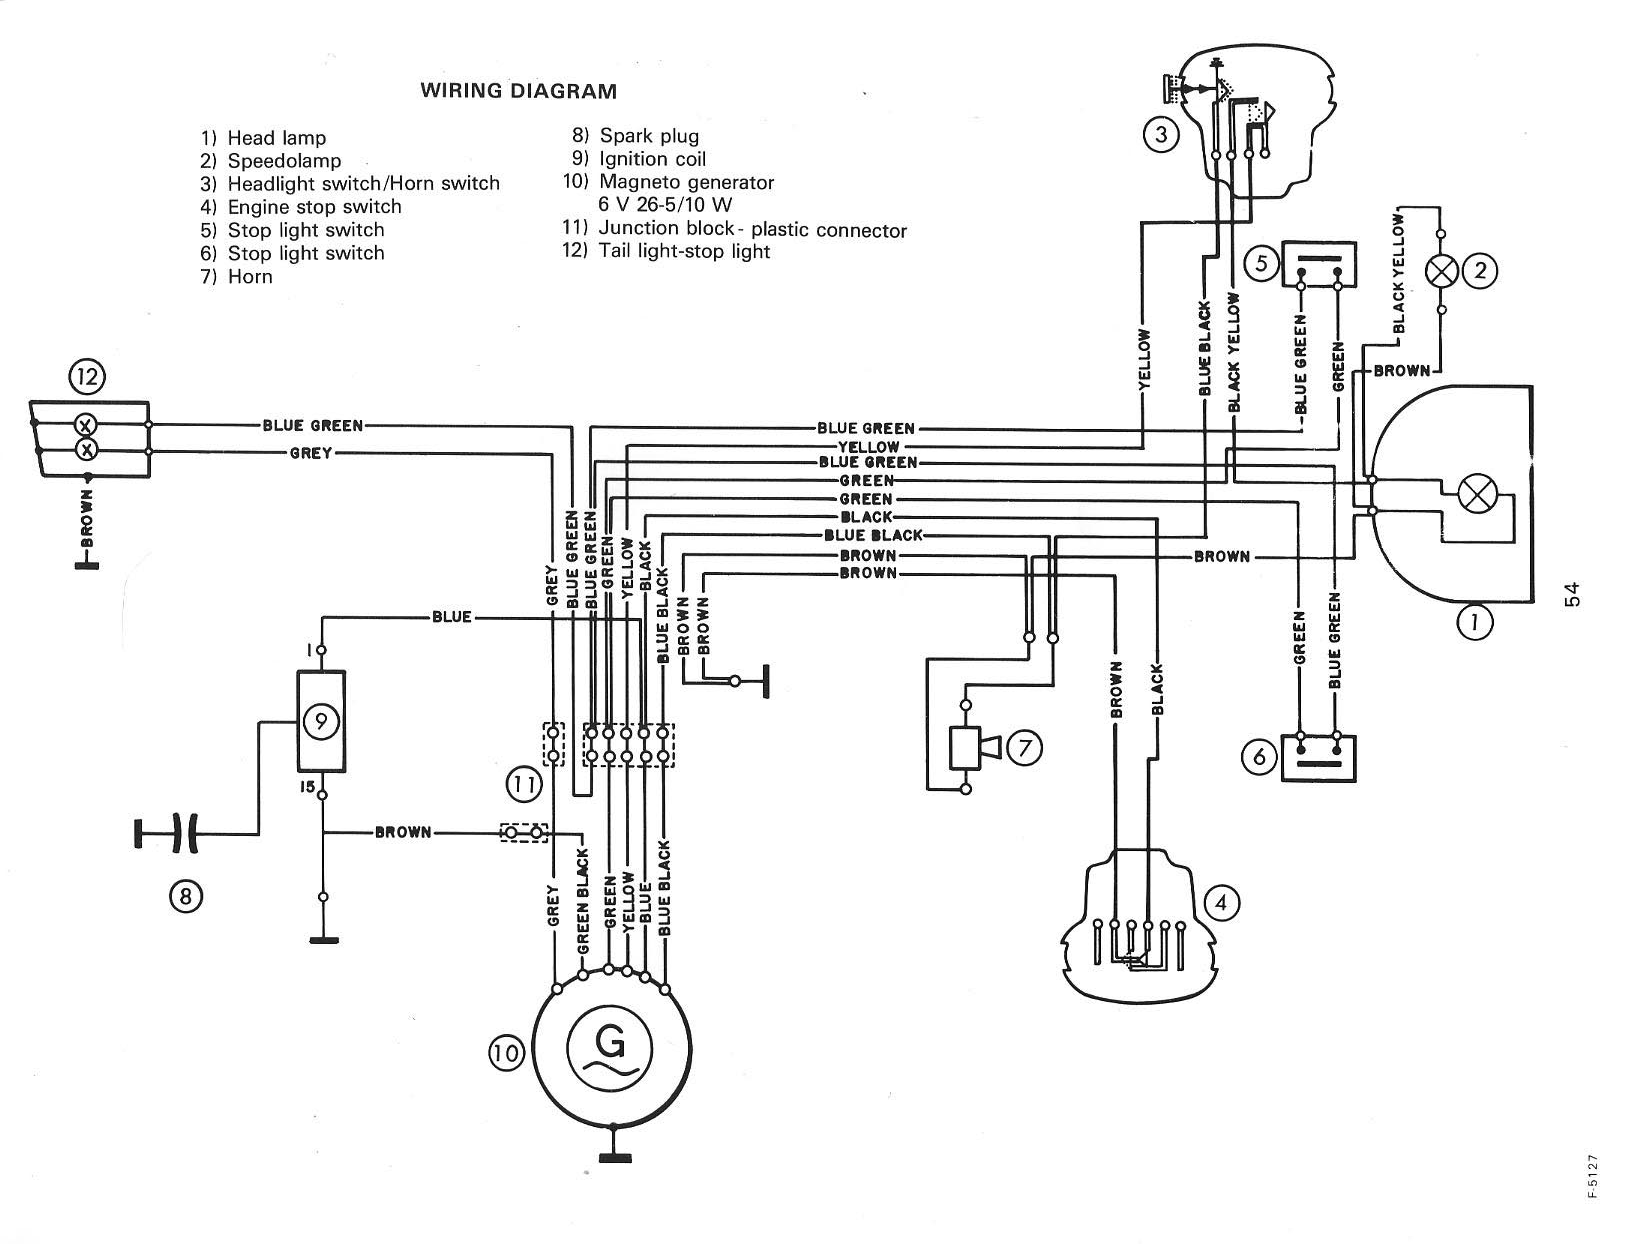 puch newport wiring diagram puch free engine image for user manual